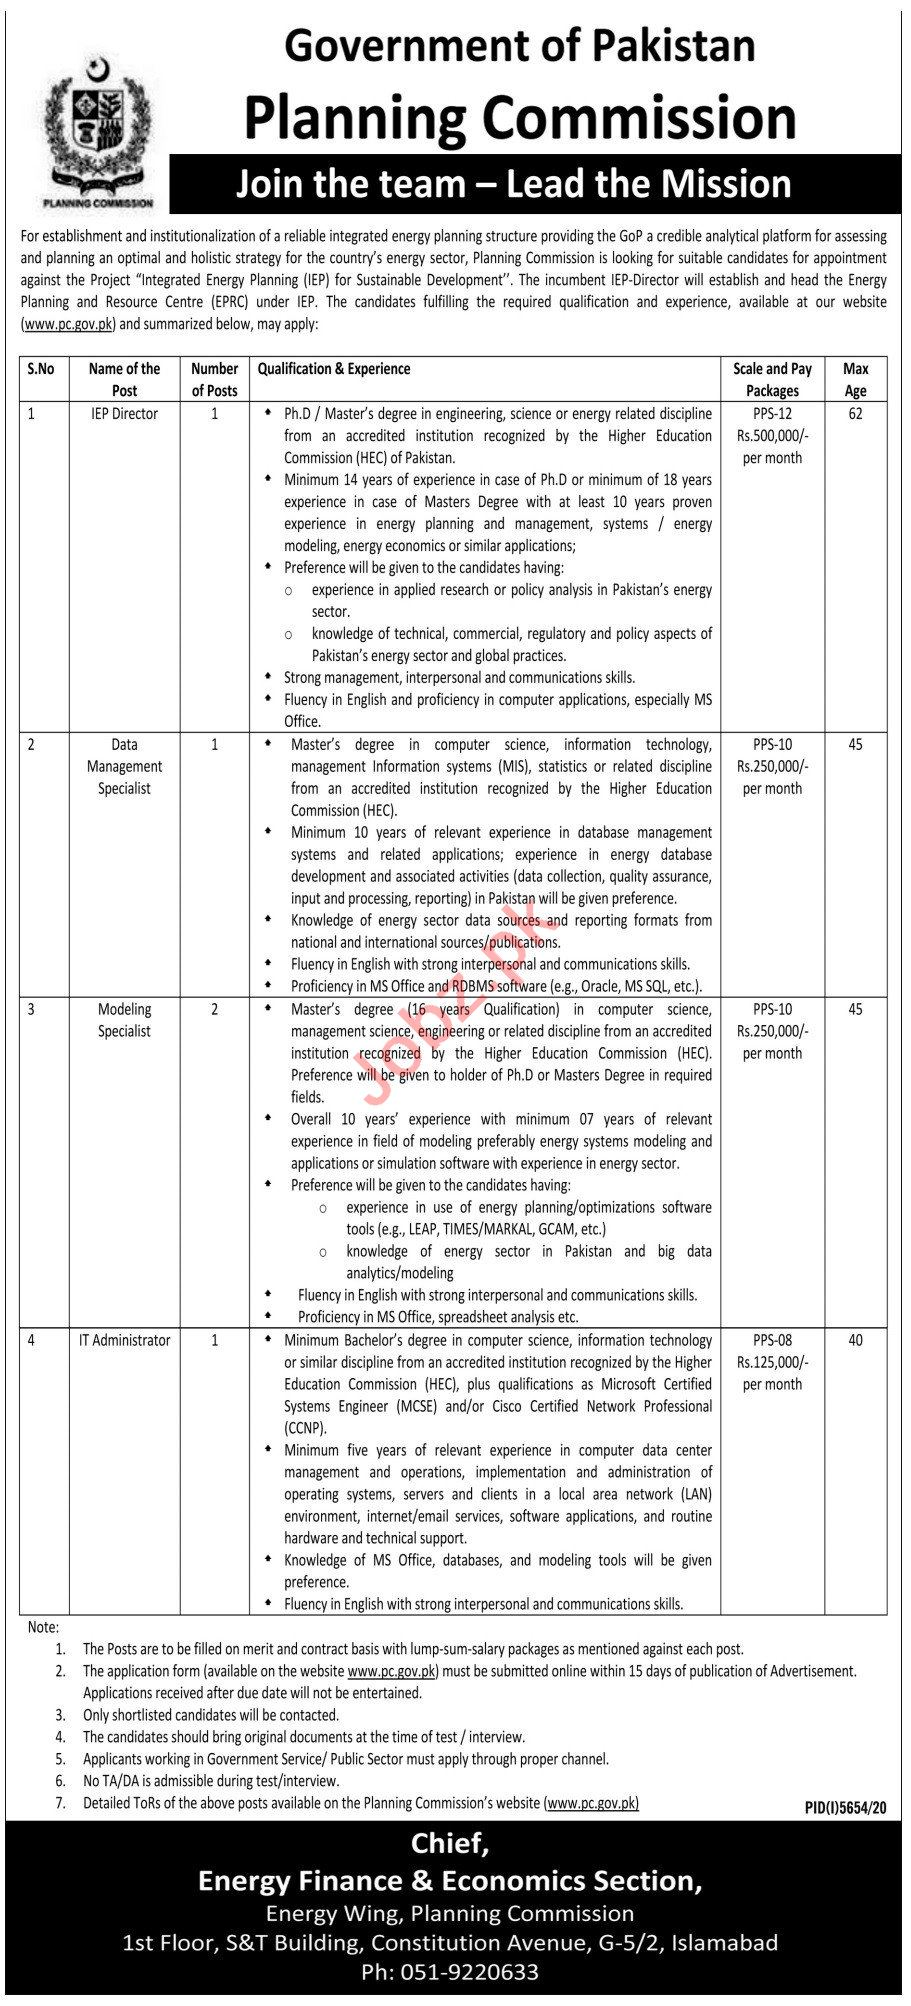 Planning Commission Islamabad Jobs 2021 for IEP Director